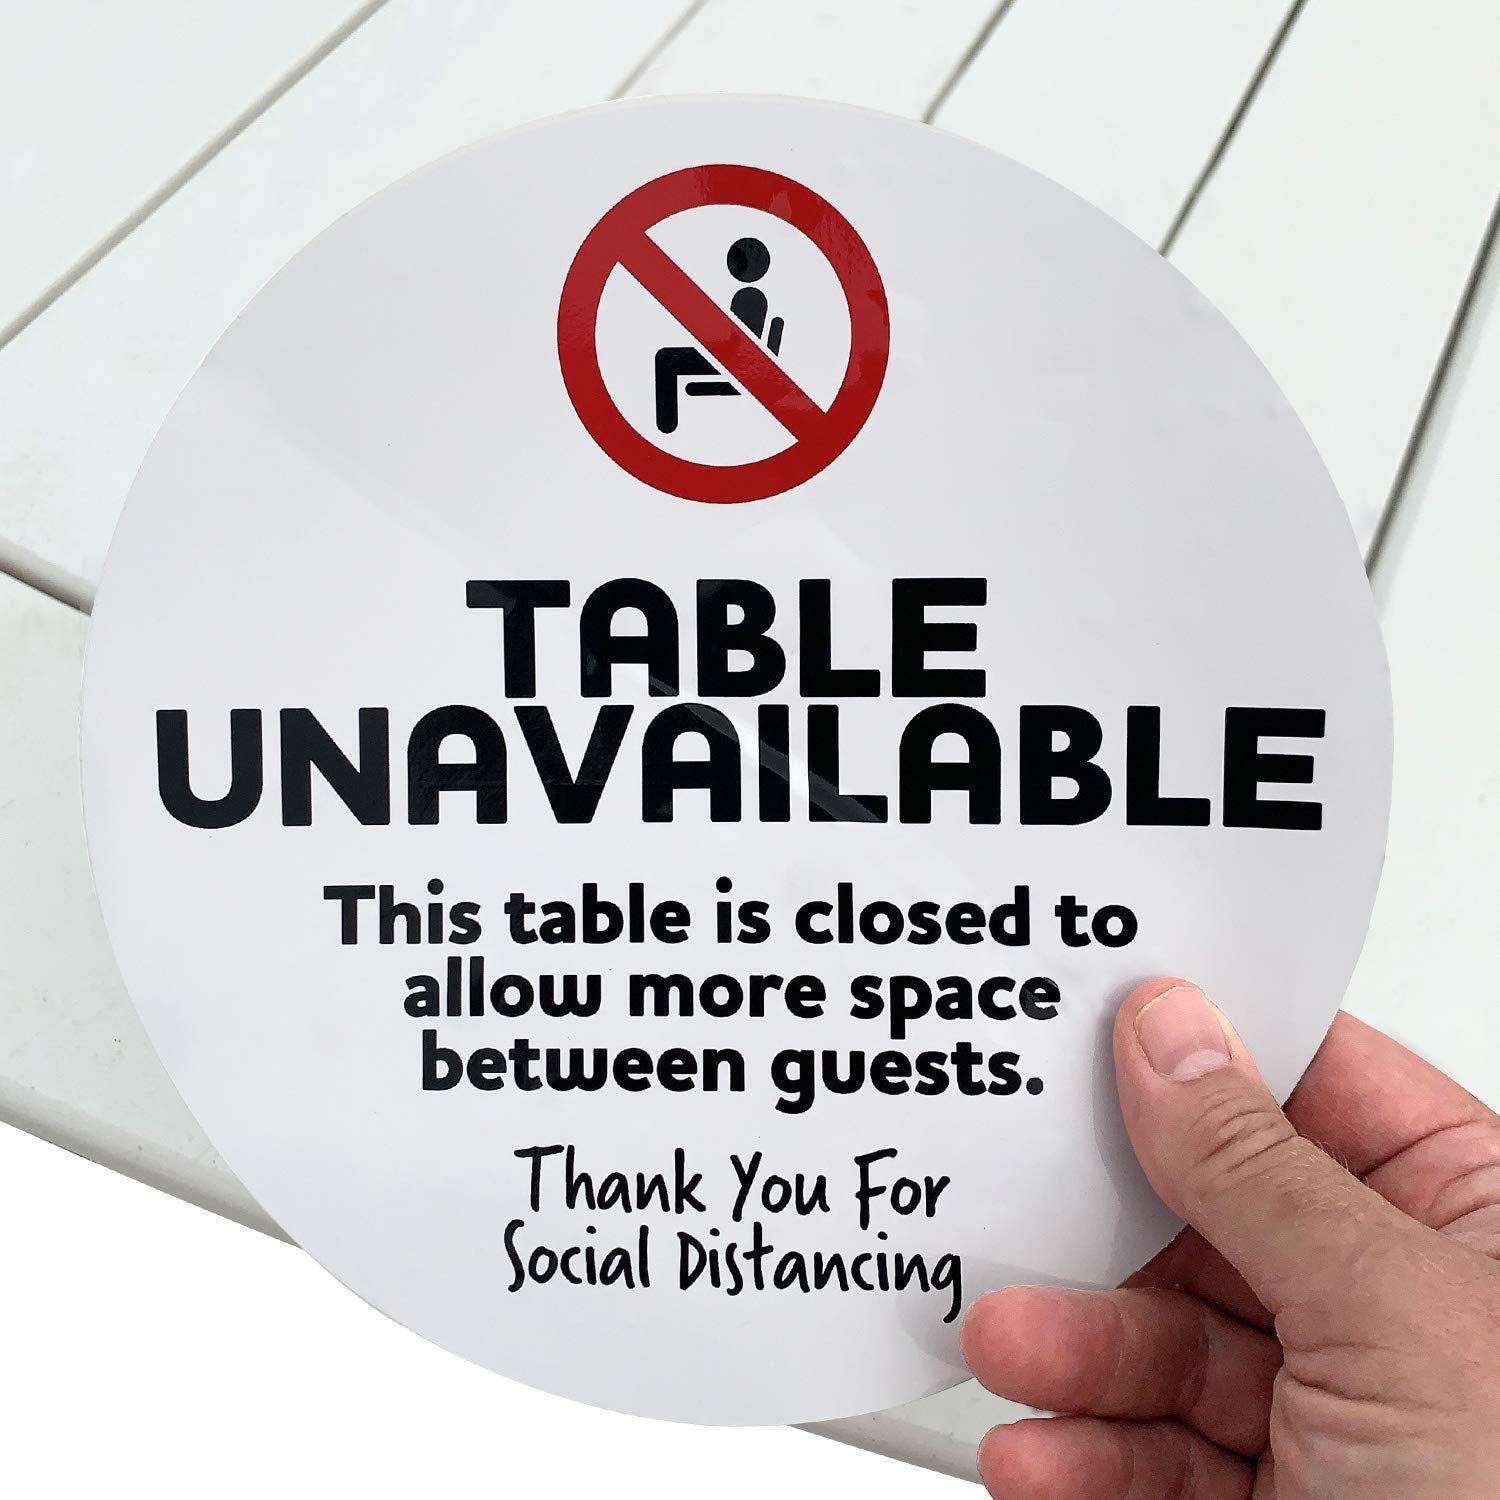 "SmartSign ""Table Unavailable, Thank You for Social Distancing, Table is Closed to Allow More Space Between Guests"" Table Decal 